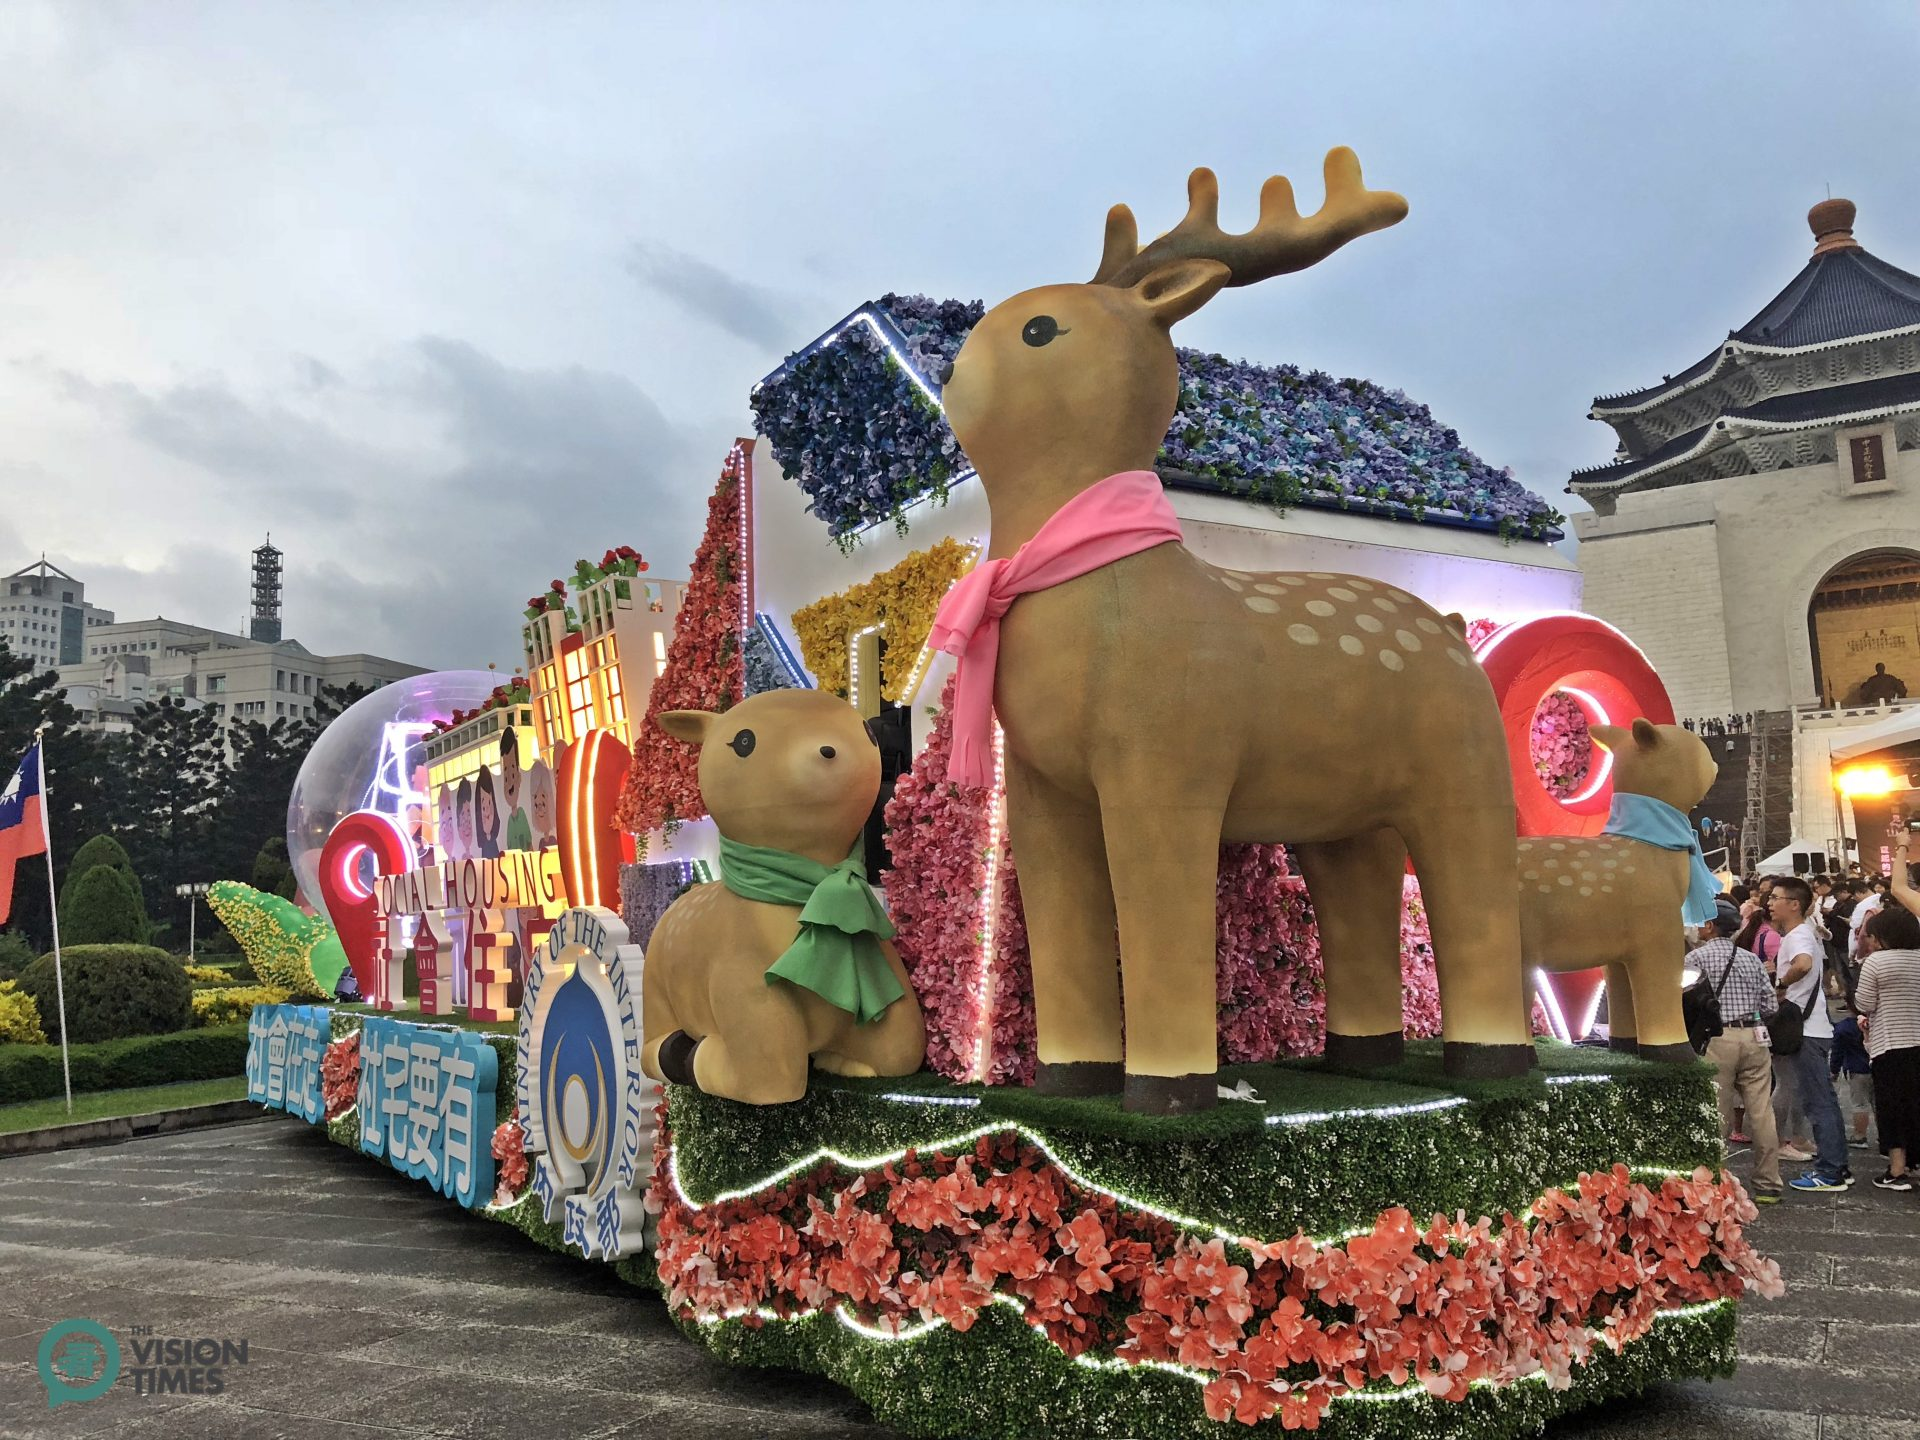 A float featuring Taiwan's housing policy is displayed at the plaza of the Chiang Kai-shek Memorial. (Image: Billy Shyu / Vision Times)